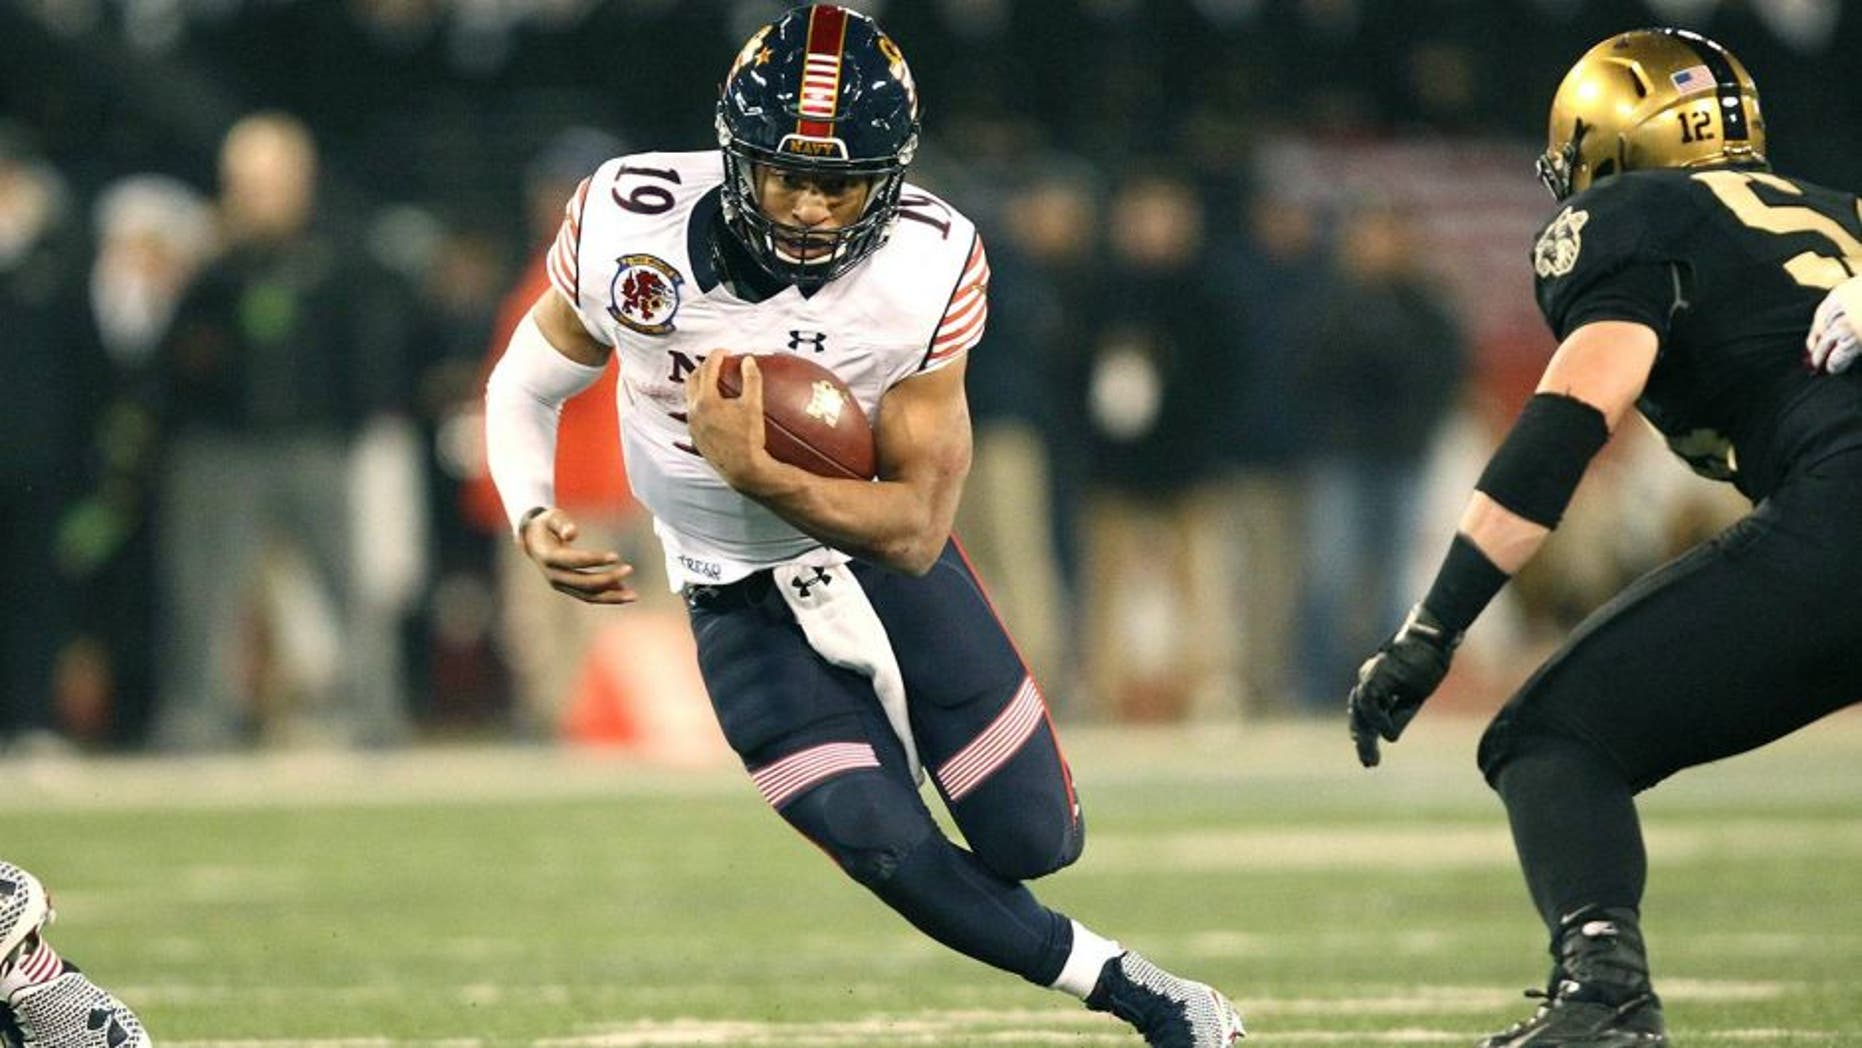 Dec 13, 2014; Baltimore, MD, USA; Navy Midshipmen quarterback Keenan Reynolds (19) rushes the ball against the Army Black Knights during the second half at M&T Bank Stadium. Mandatory Credit: Danny Wild-USA TODAY Sports